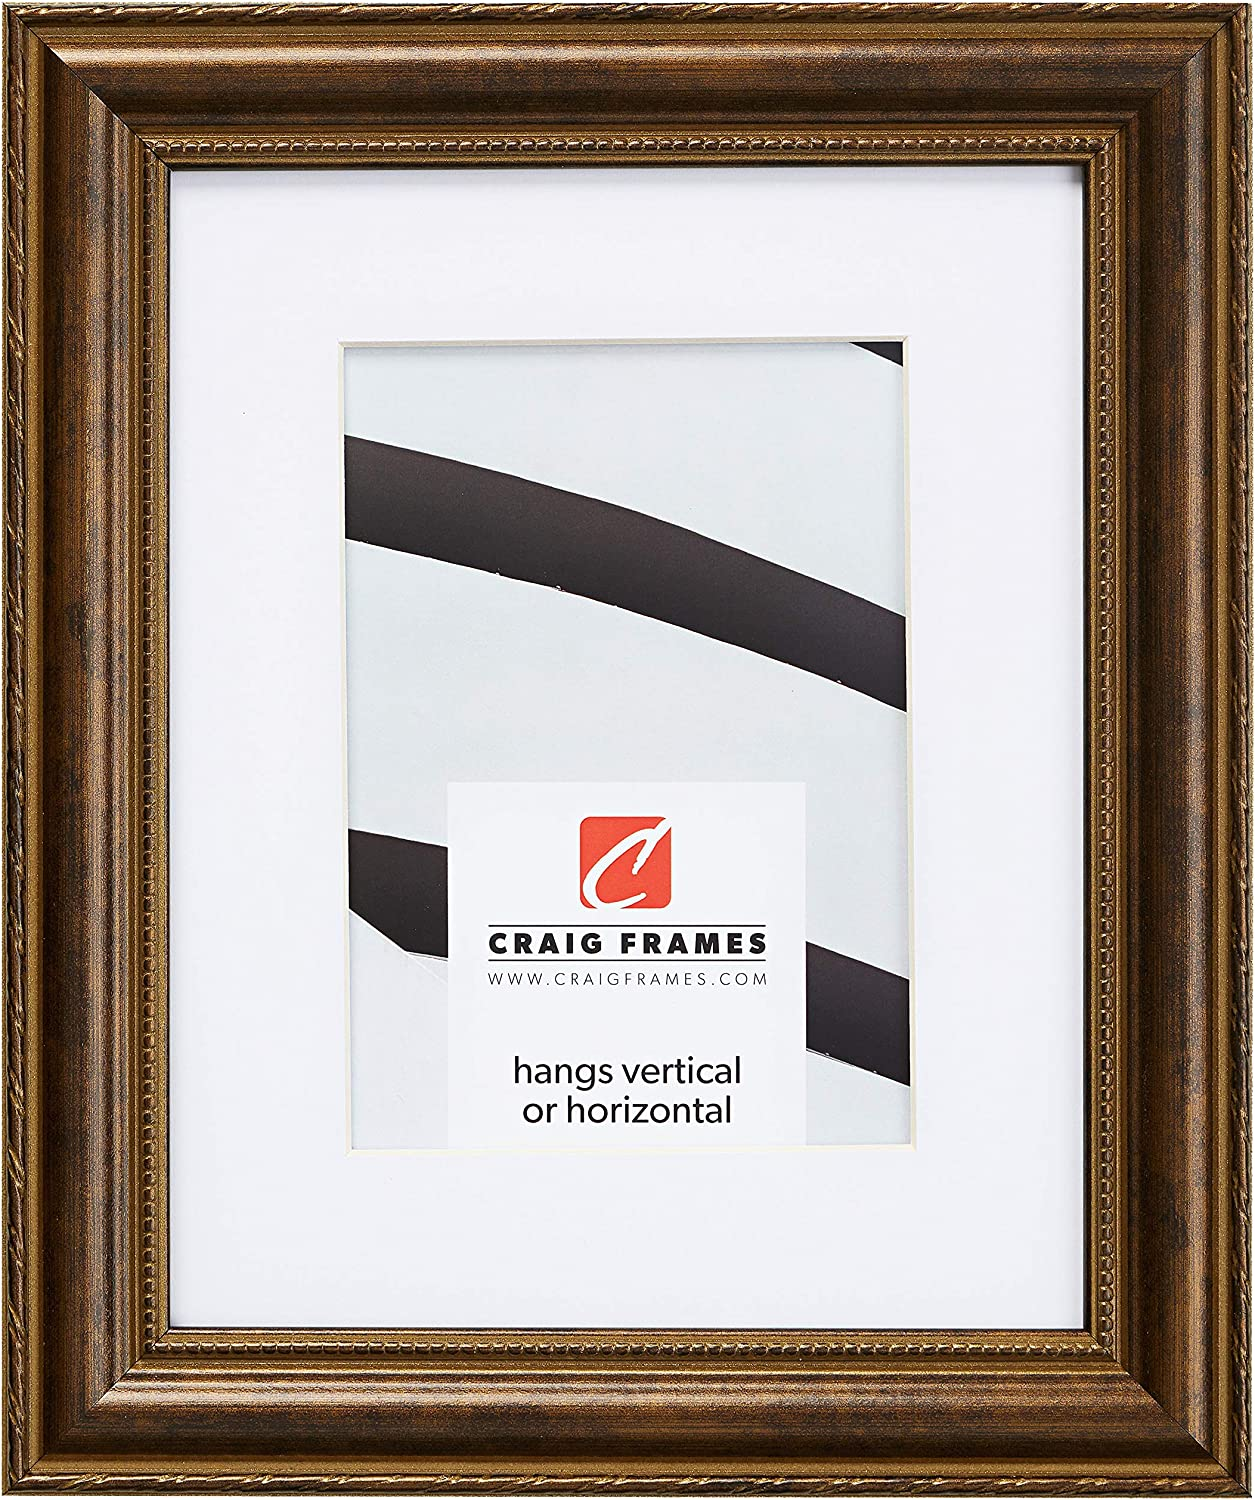 Craig Frames Victoria 13 Year-end gift x 19 Bronze Super special price Picture Inch Frame Ornate